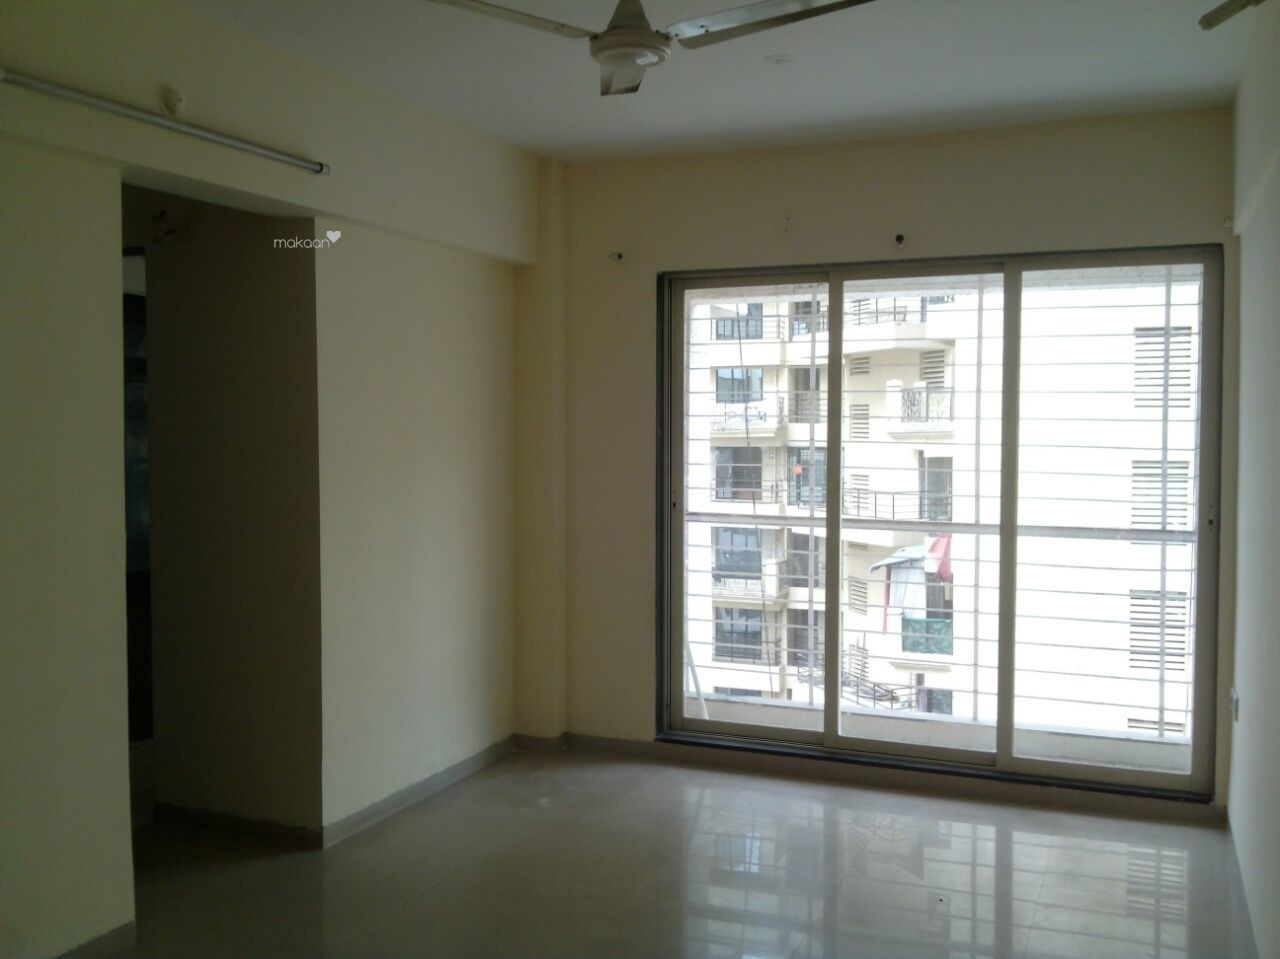 1050 sq ft 2BHK 2BHK+2T (1,050 sq ft) Property By Bhoomi Enterprises In Project, Kharghar